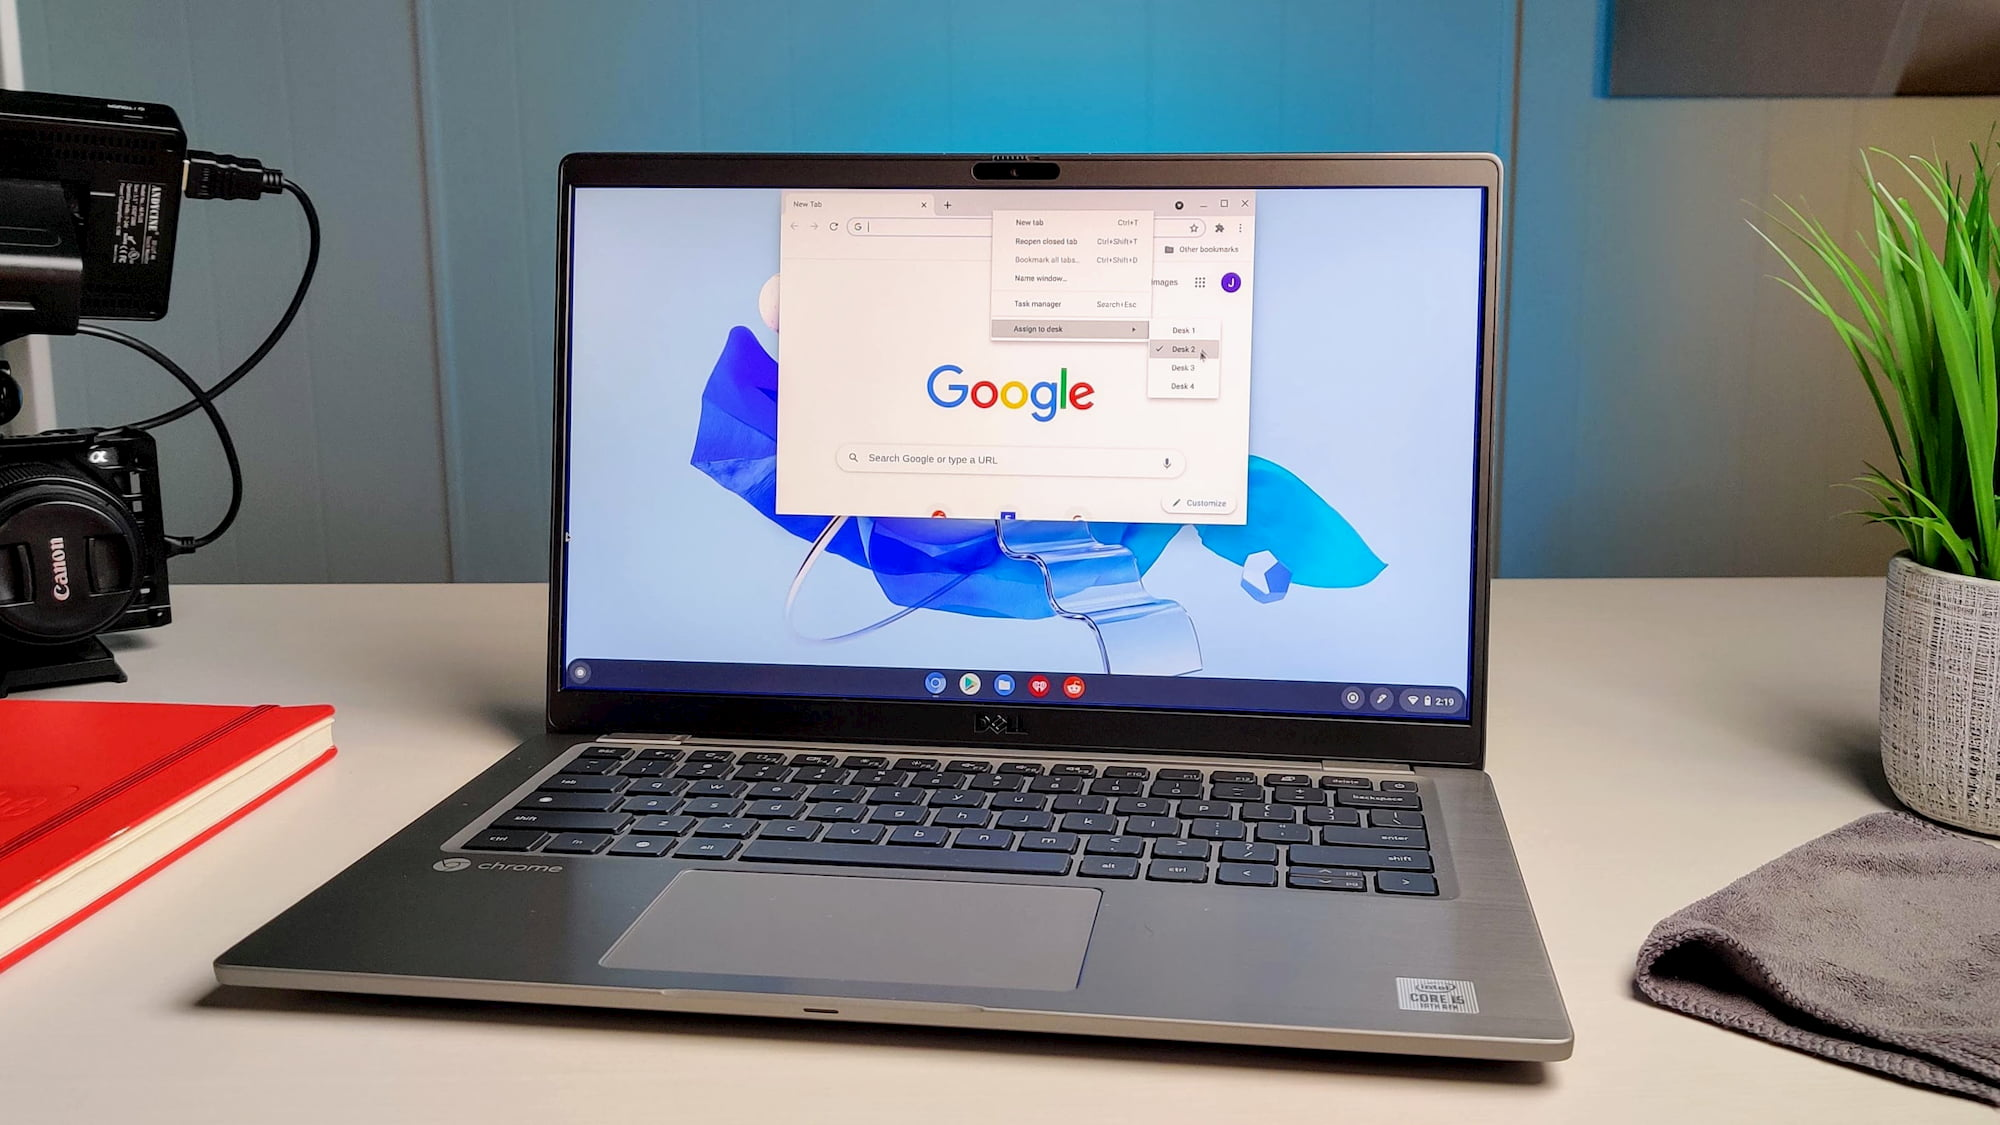 Chromebook virtual desk navigation is getting a substantial productivity boost